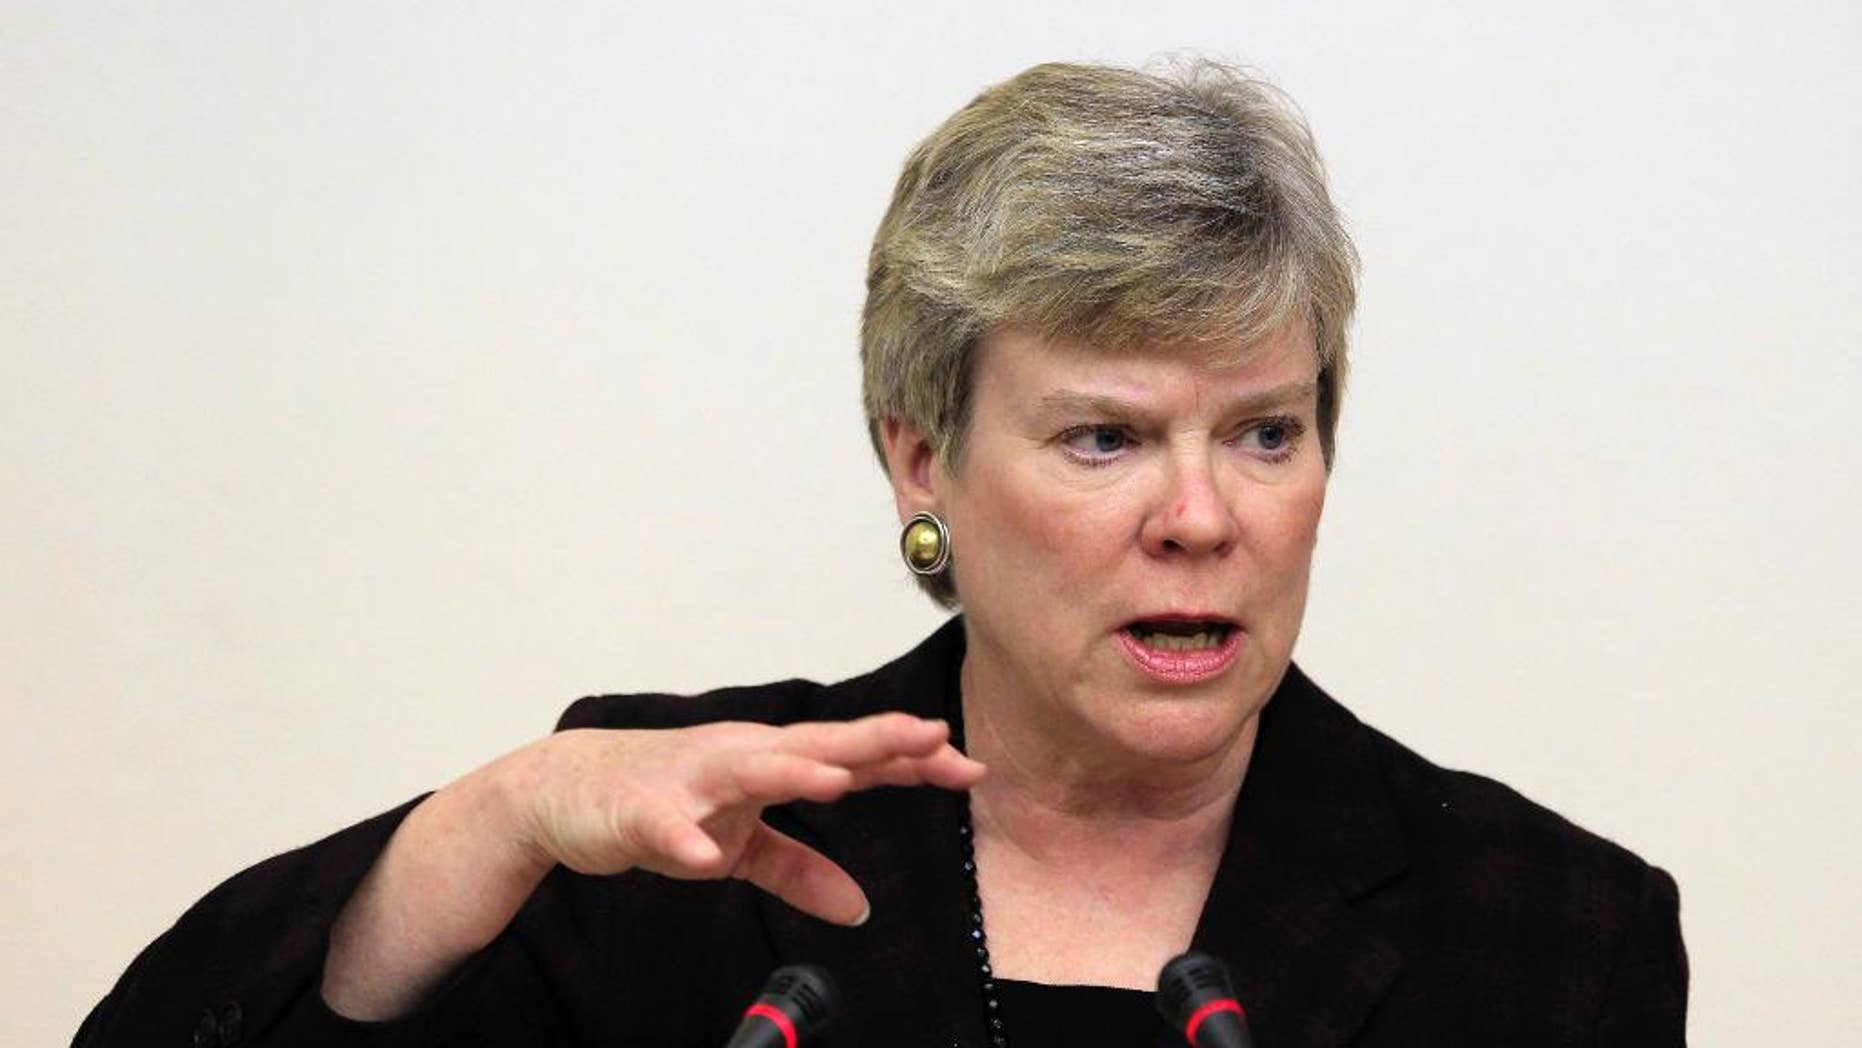 FILE- In this March 30, 2012 file photo, Rose Gottemoeller, Acting Under Secretary for Arms Control and International Security, delivers a lecture to students in Moscow. Gottemoeller spoke for the U.S. delegation Friday, May 22, 2015, in blocking the final conference document during a landmark nuclear treaty review conference at the United Nations. (AP Photo/Sergey Ponomarev, File)